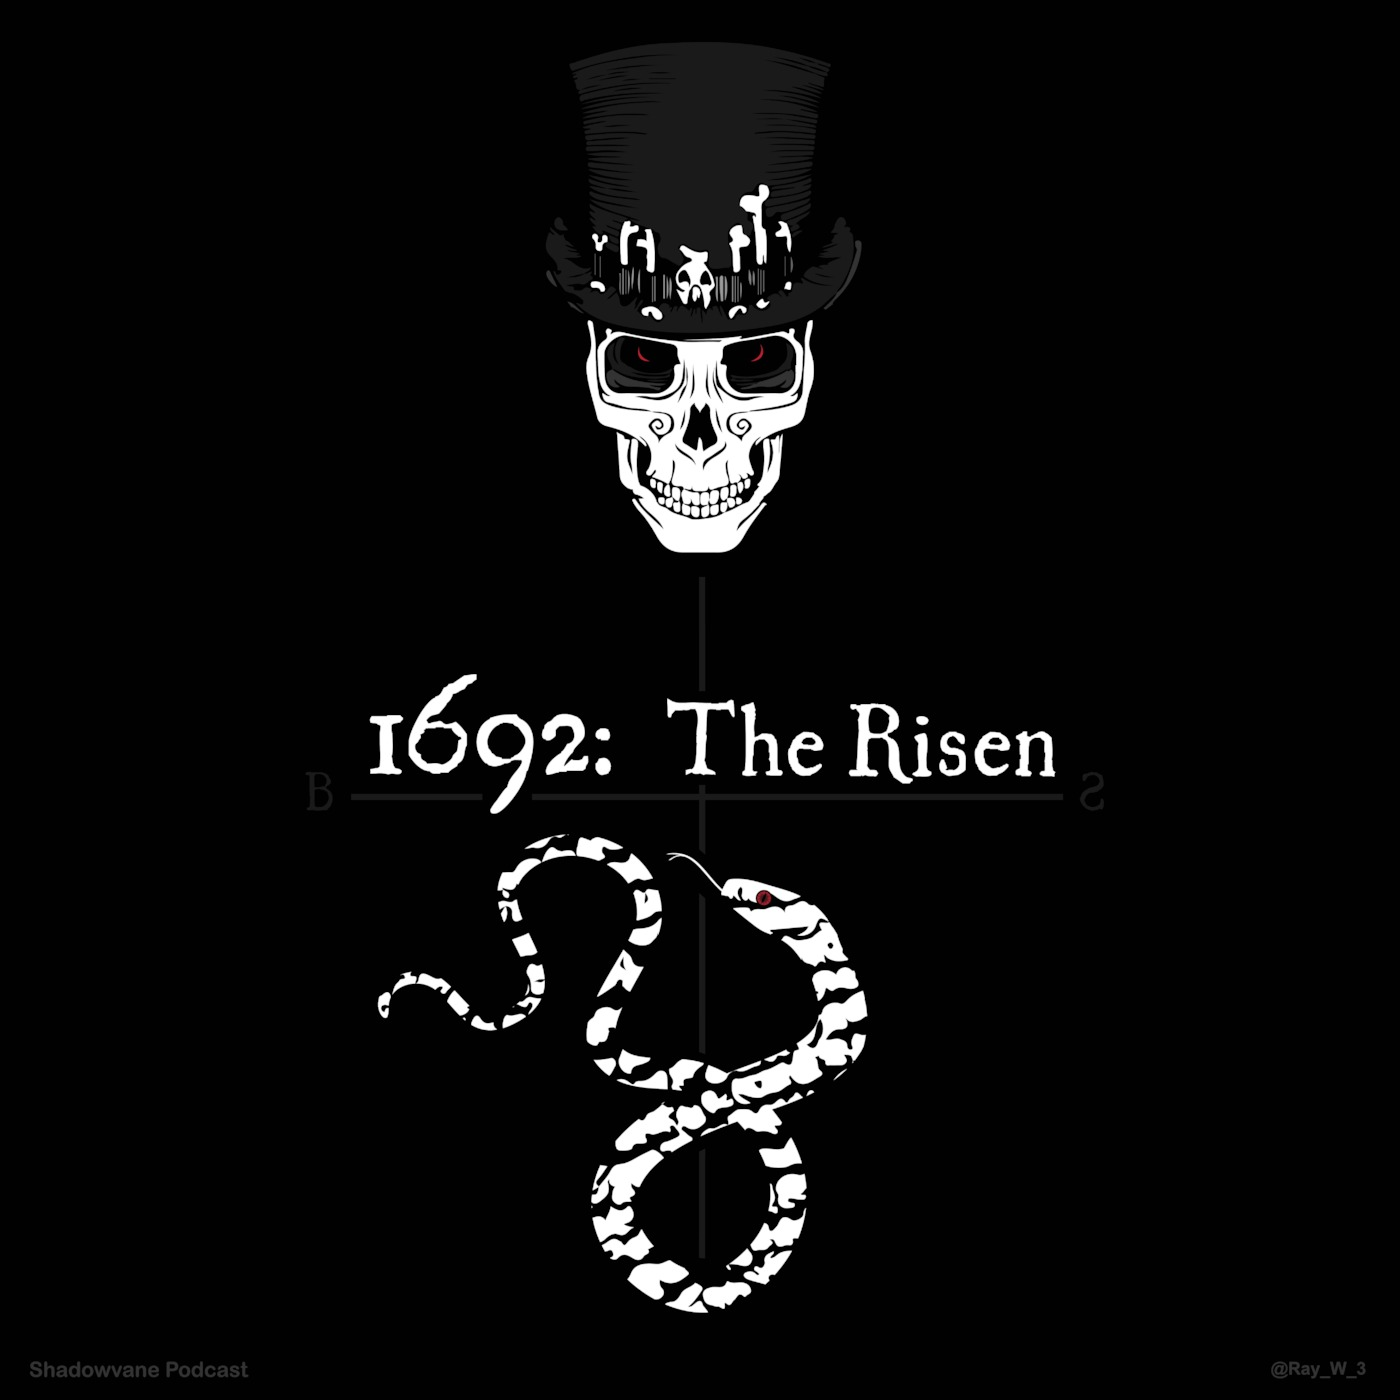 1692: The Risen: Episode 1 - Laughter In The Dark The Shadowvane podcast